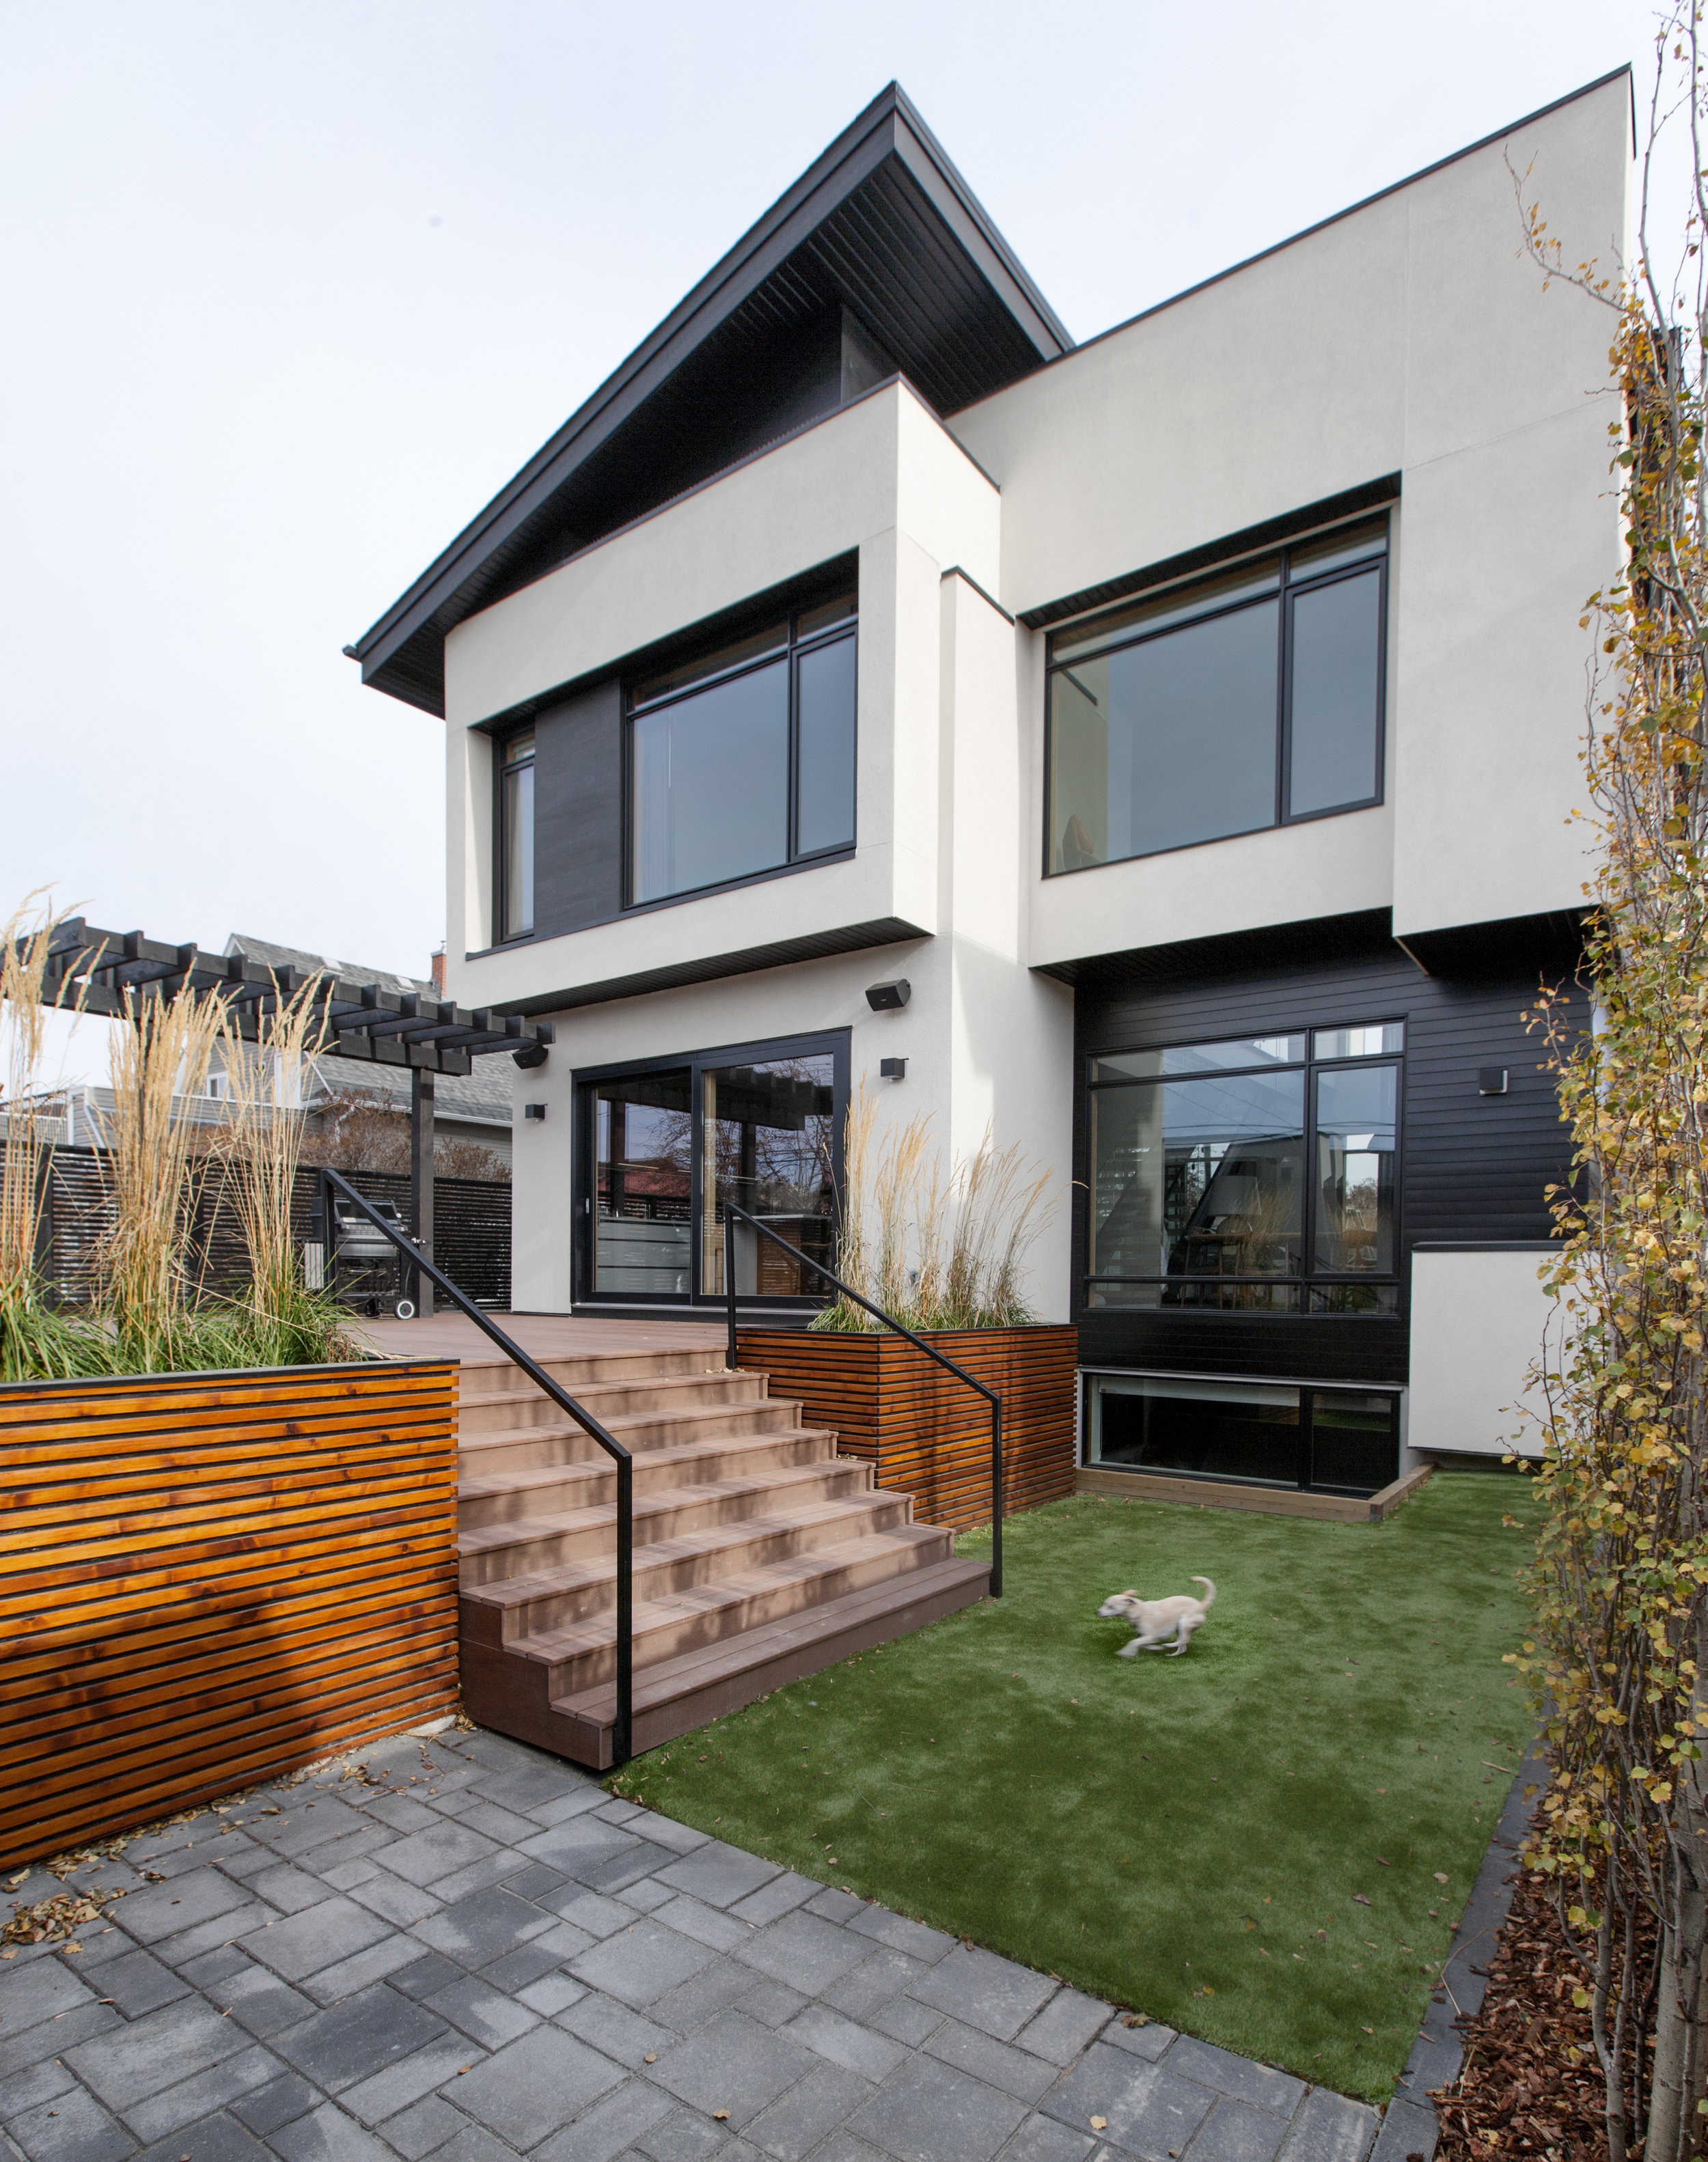 Bridgeland House Rear Yard and Elevation Photo by Gary Campbell